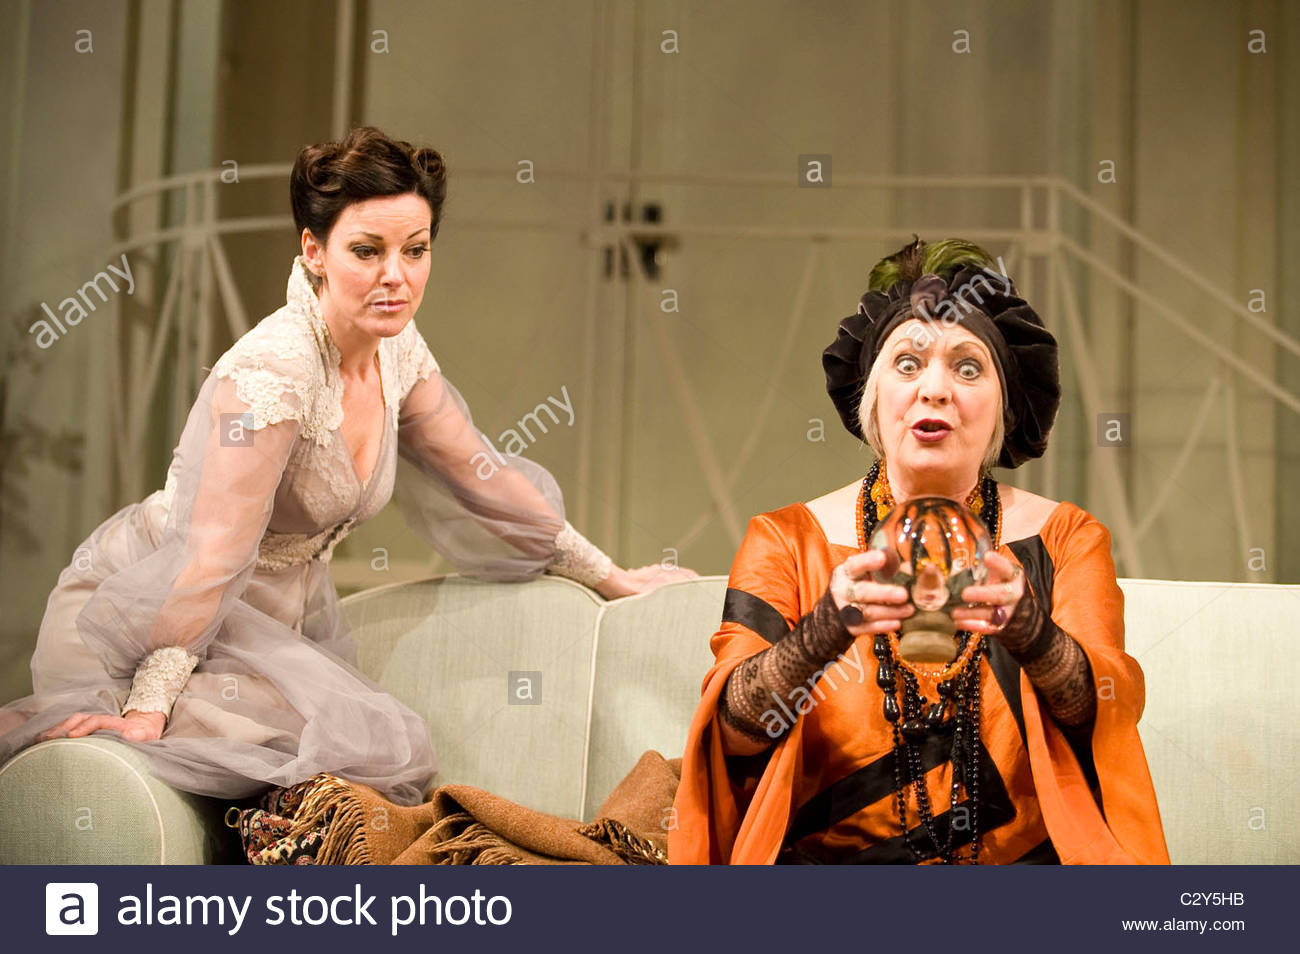 Blithe Spirit by Noel Coward ,directed by Thea Sharrock. With Ruthie  Henshall as Elvira,Alison Steadman as Madame Arcati.